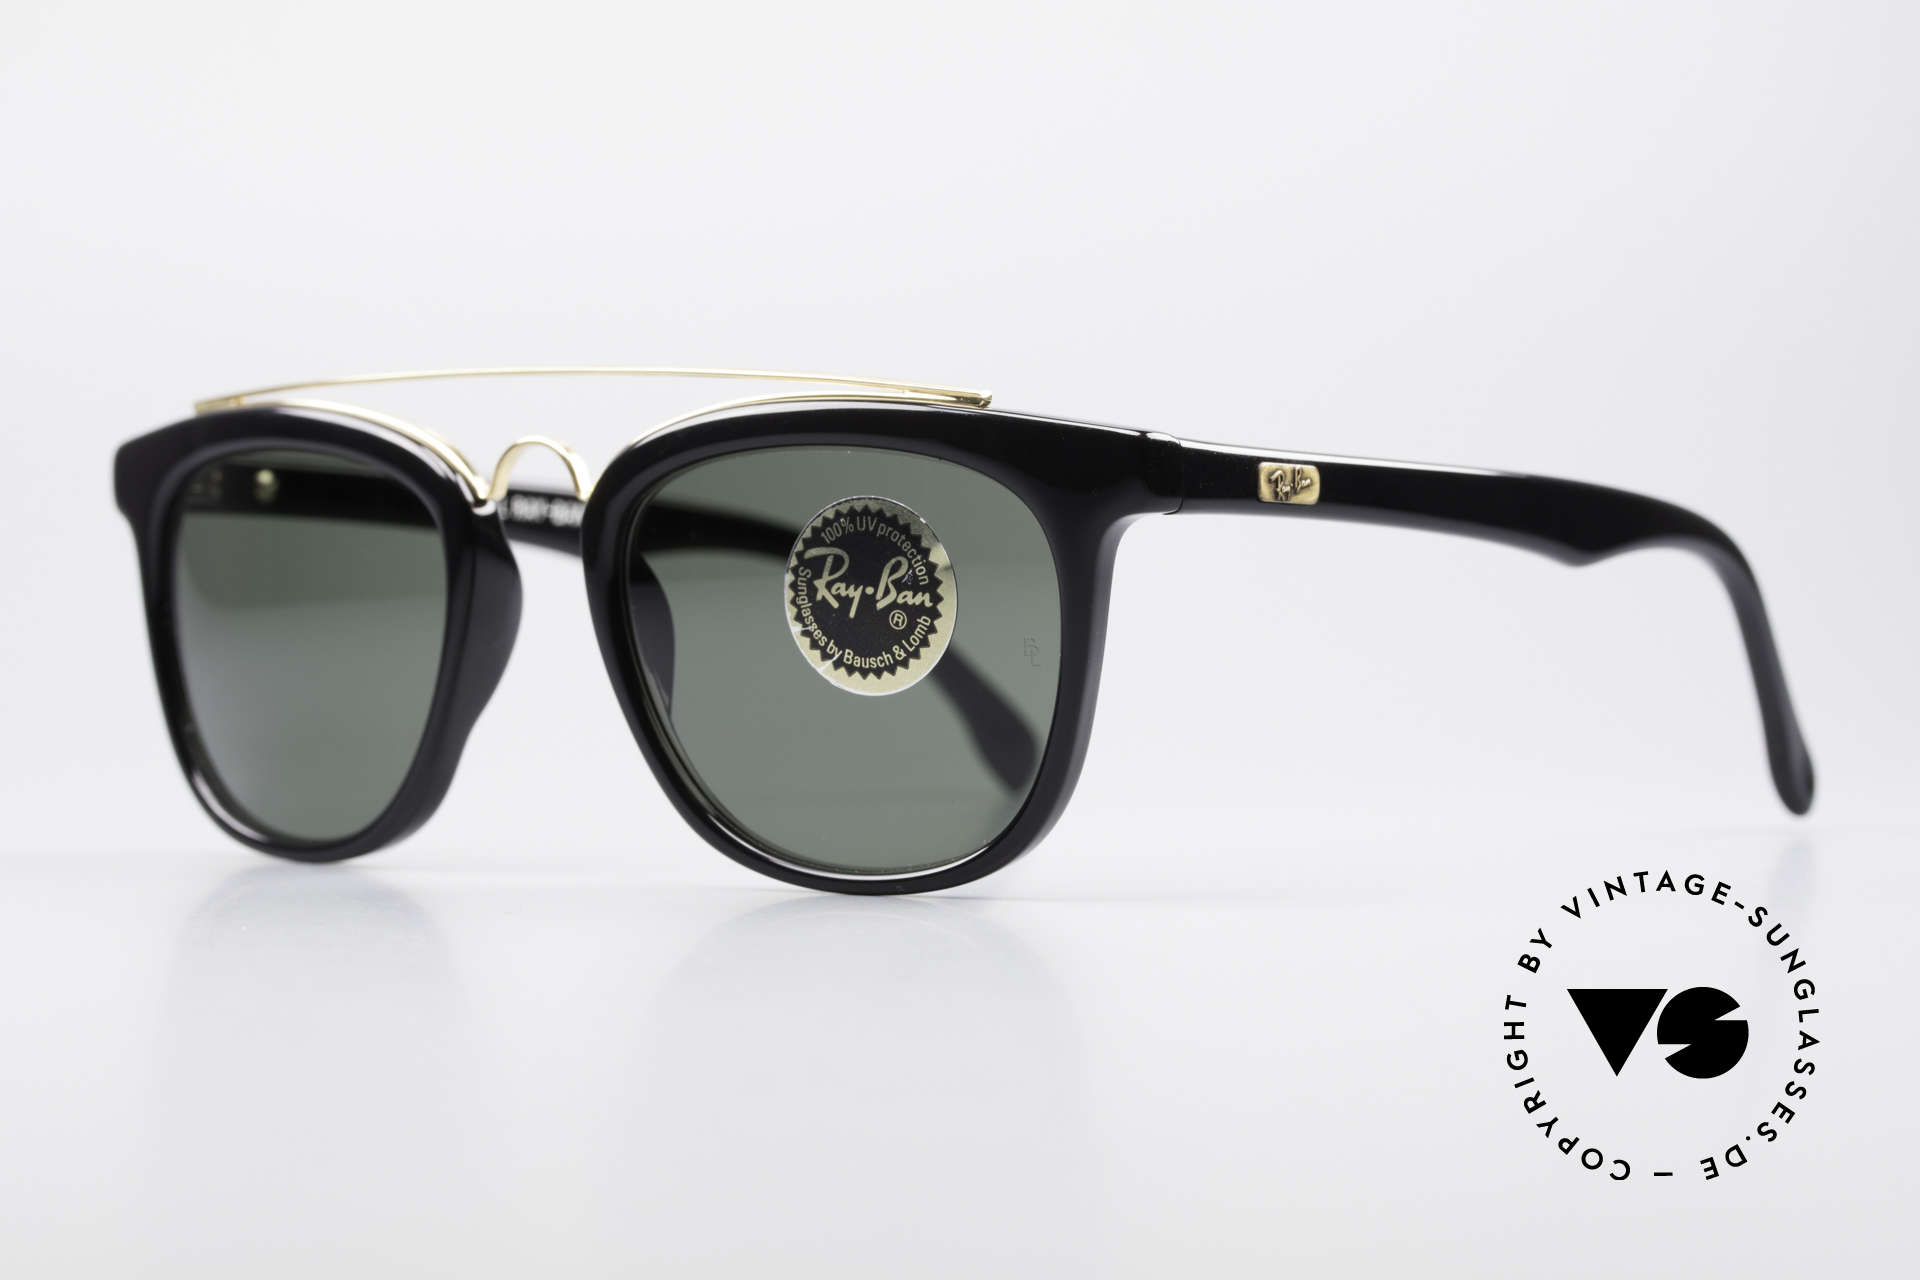 Ray Ban Gatsby Style 5 USA Bausch Lomb Sunglasses, original (made by Bausch&Lomb), NO RETRO!, Made for Men and Women